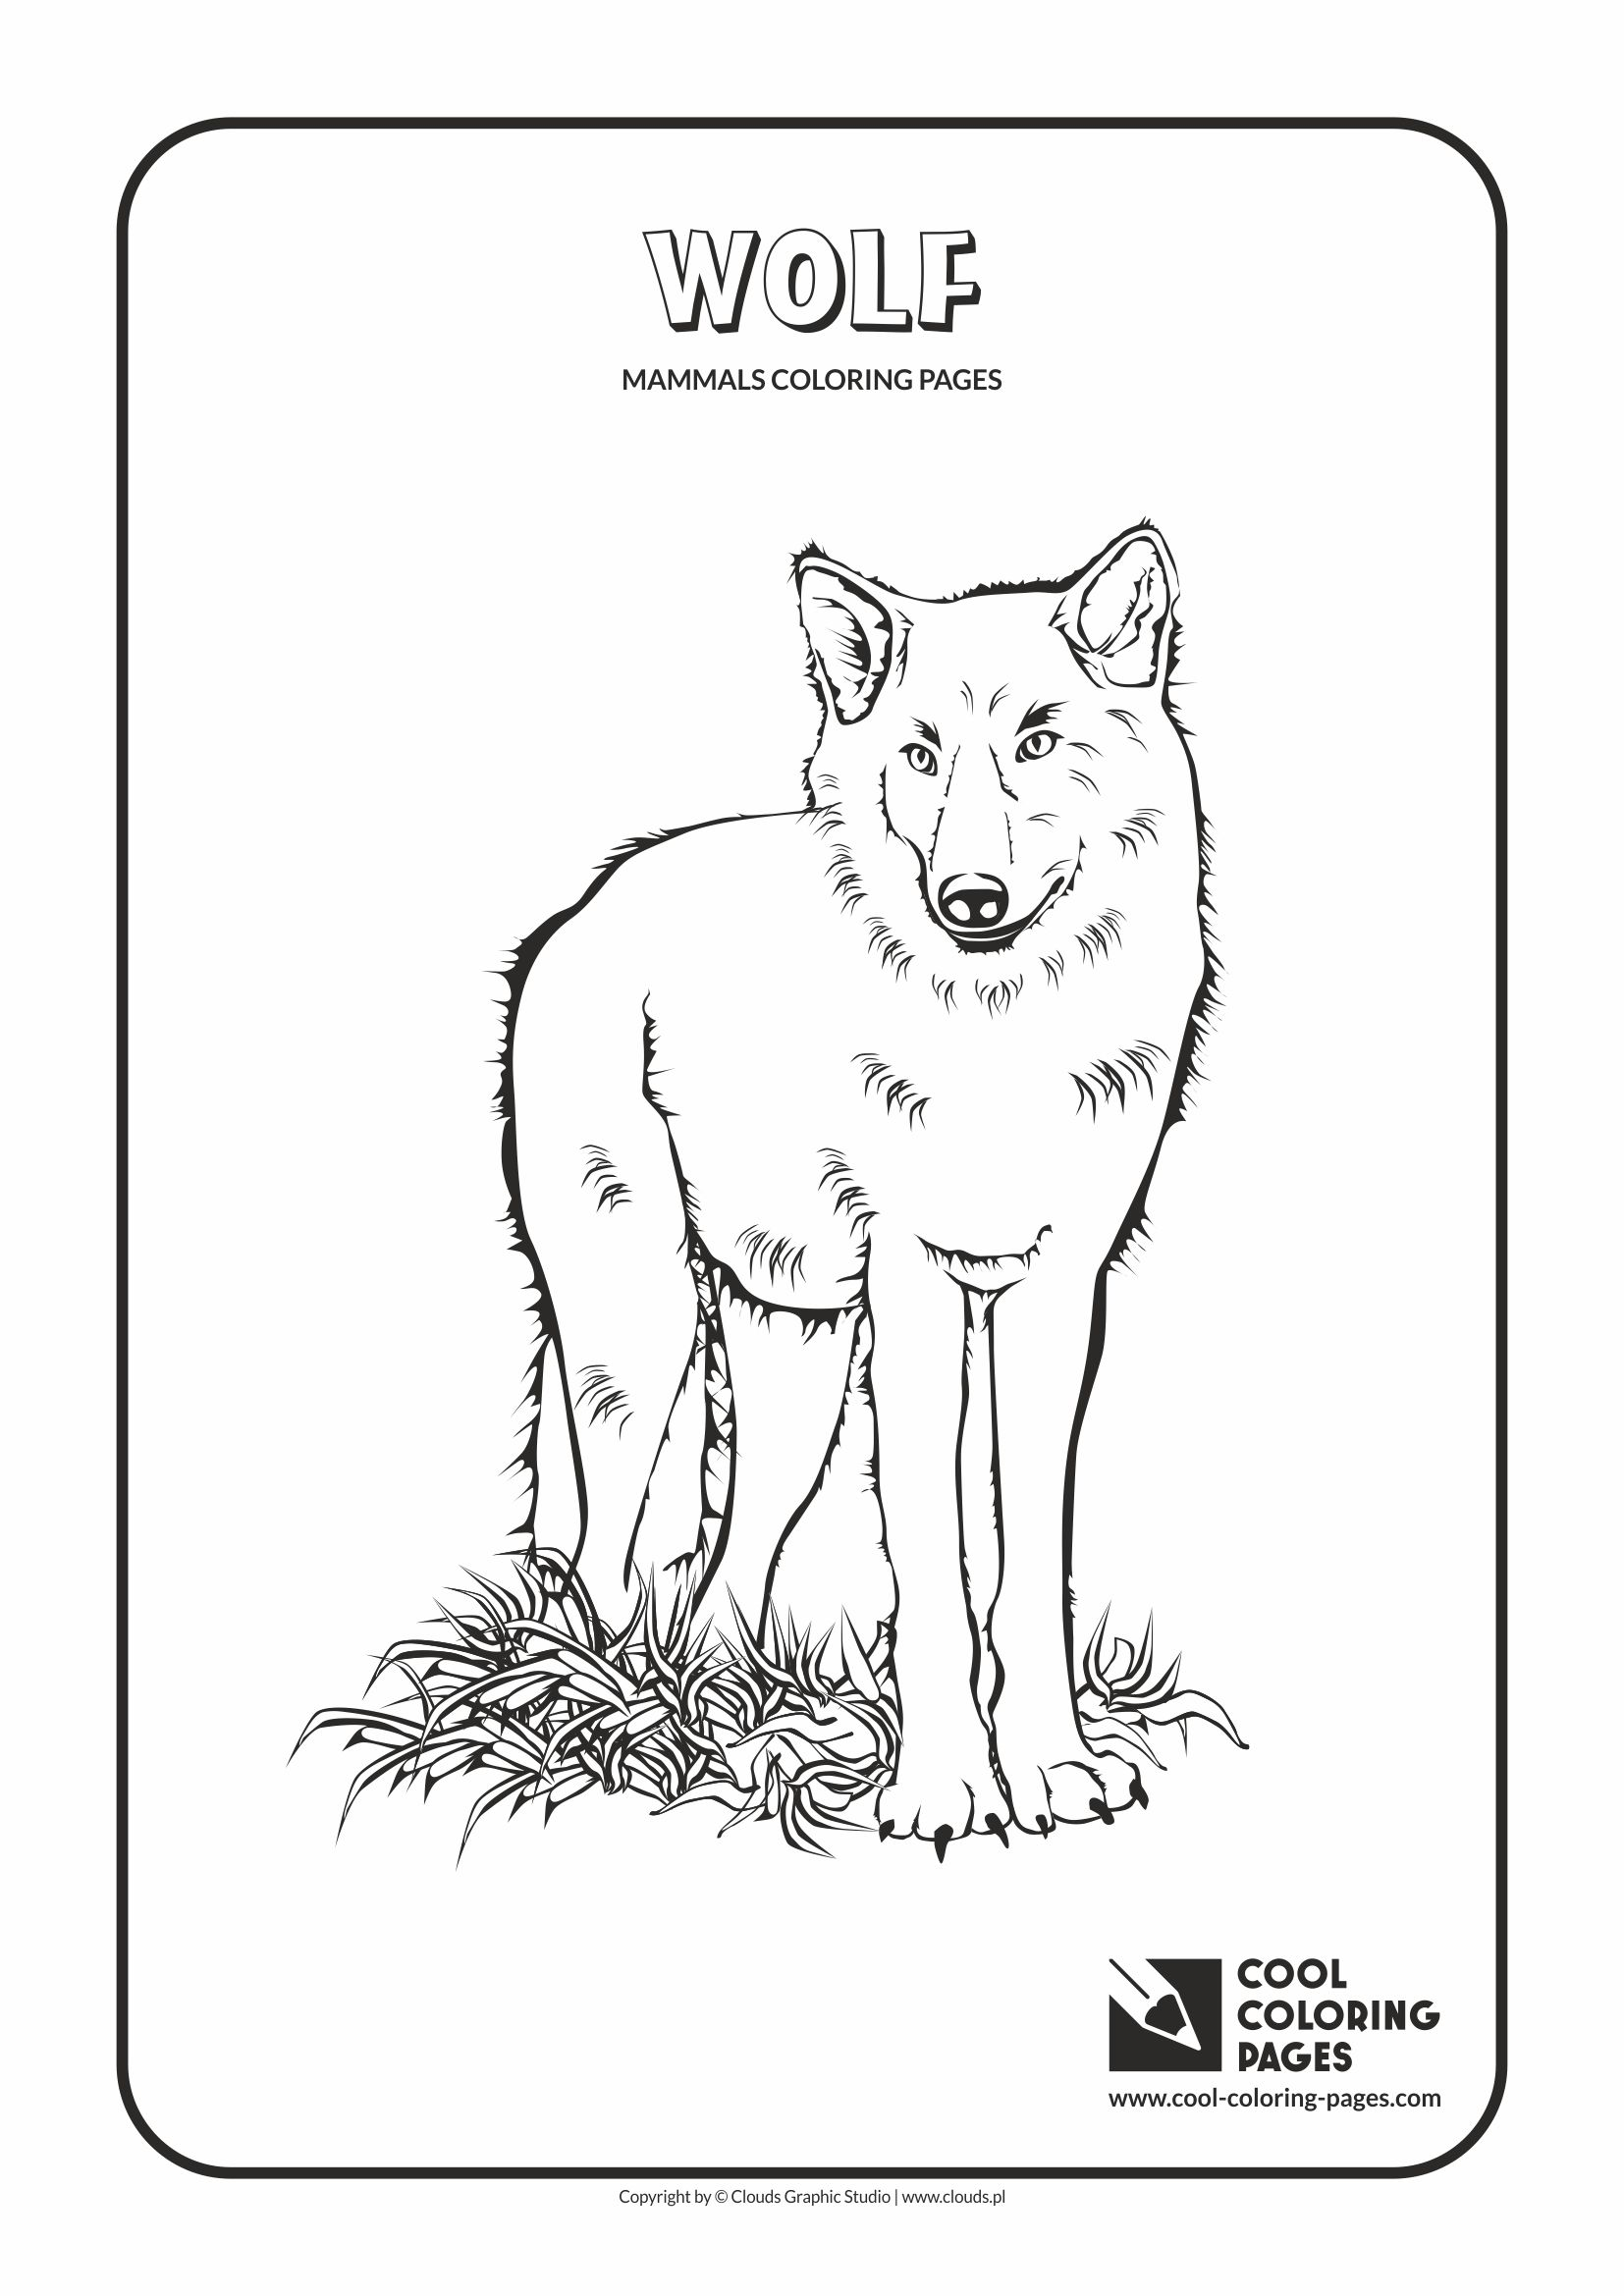 Cool Coloring Pages - Animals / Wolf / Coloring page with wolf